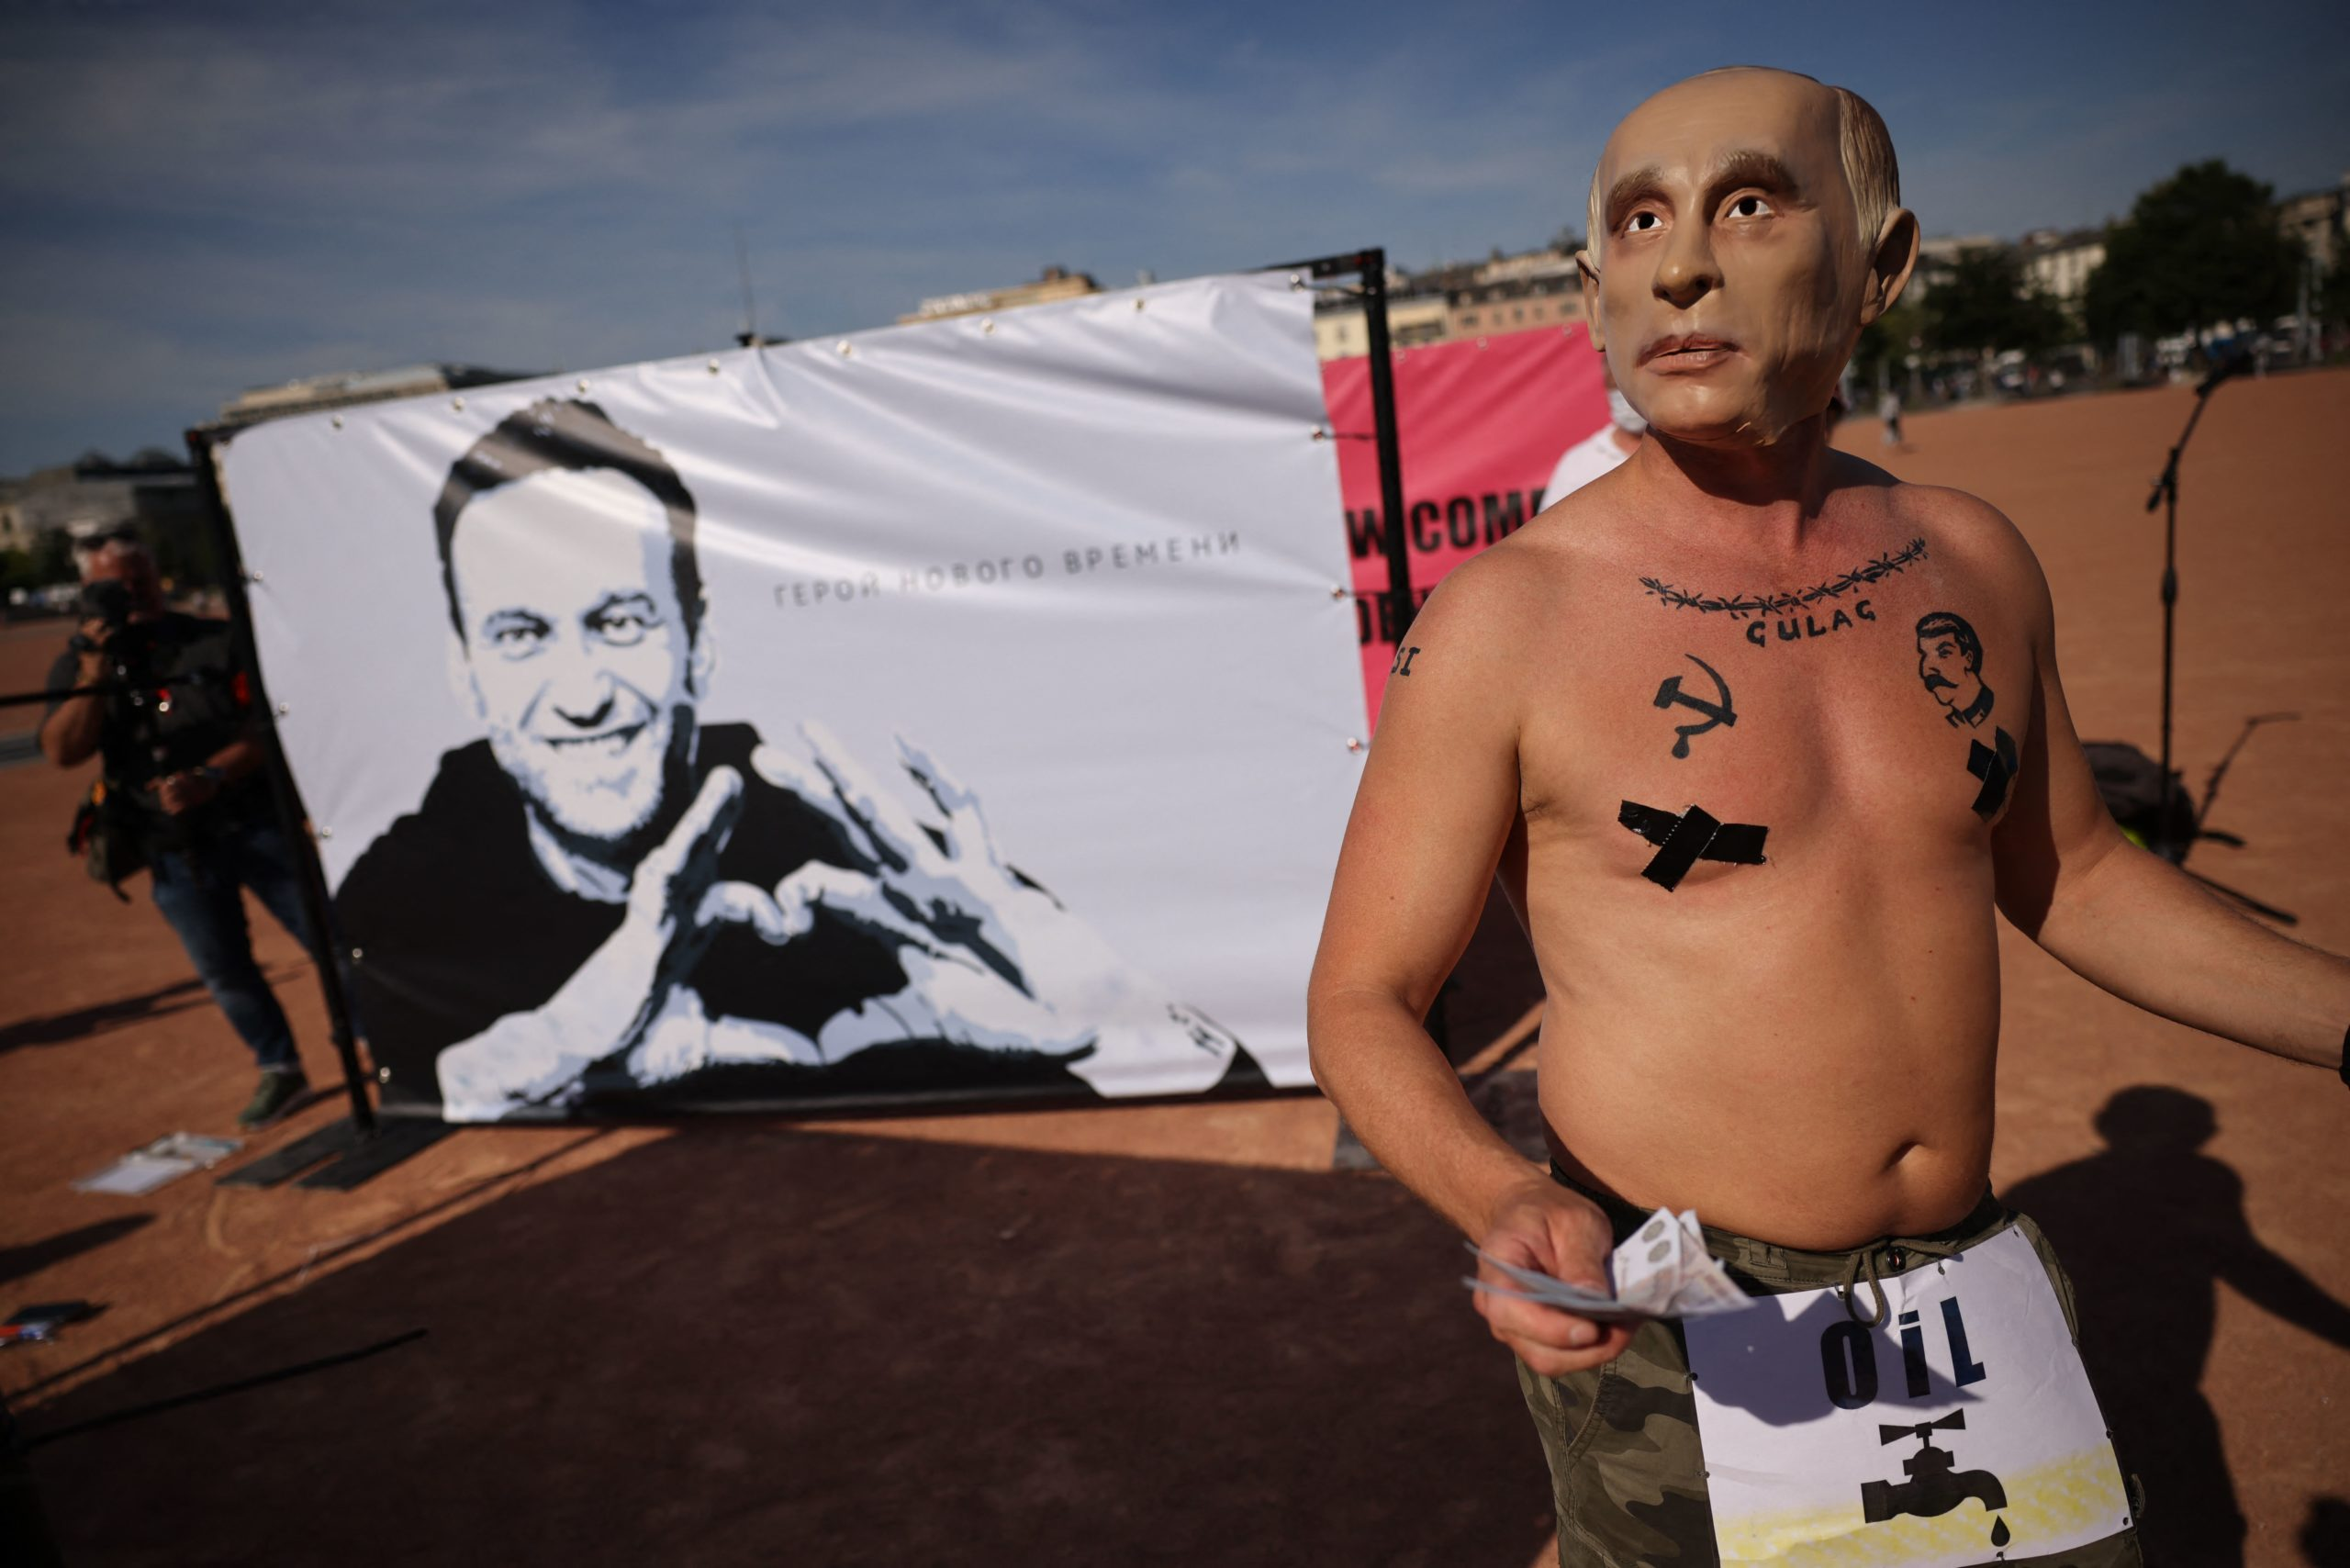 A demonstrator protests in front of a banner in support to Kremlin critic Alexei Navalny reading